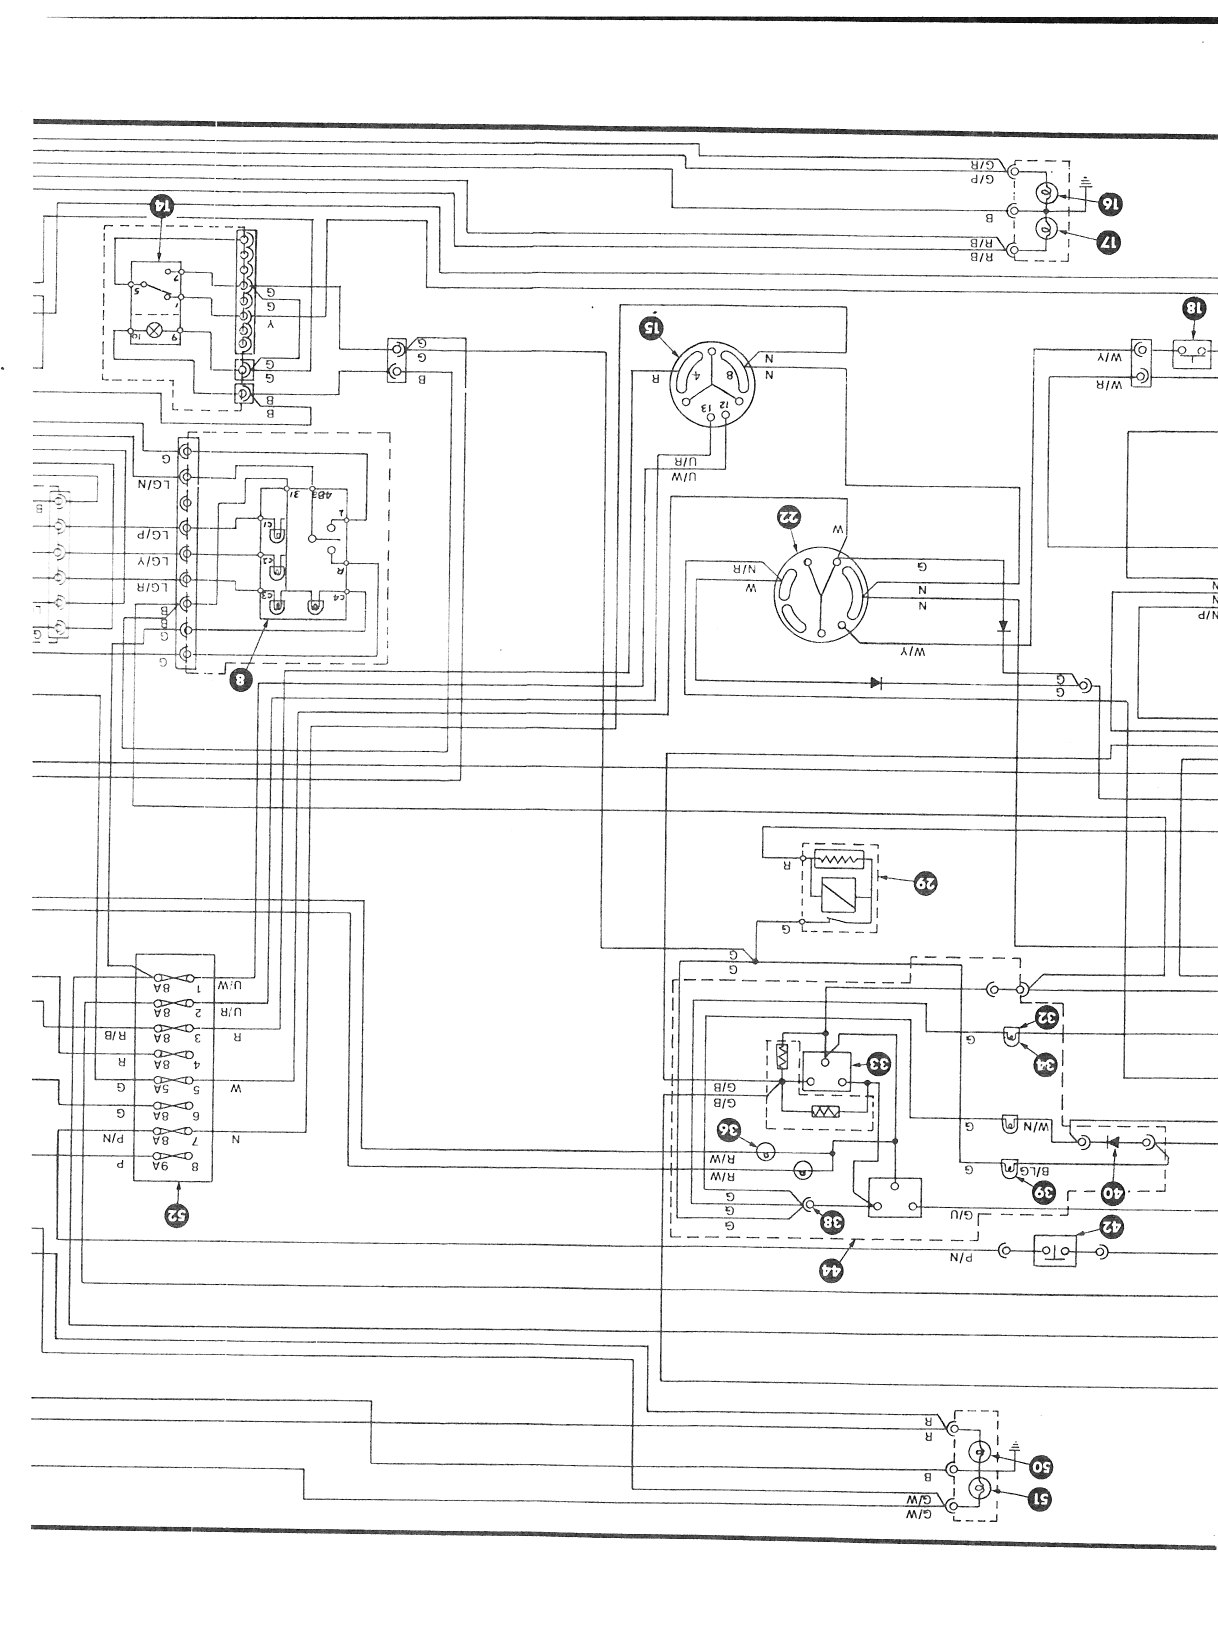 I Have A Ford 3910 Its 1990 Model And Someone Before Me Has Tractor Electrical Wiring Diagram Diesel Thanks Dan Graphic